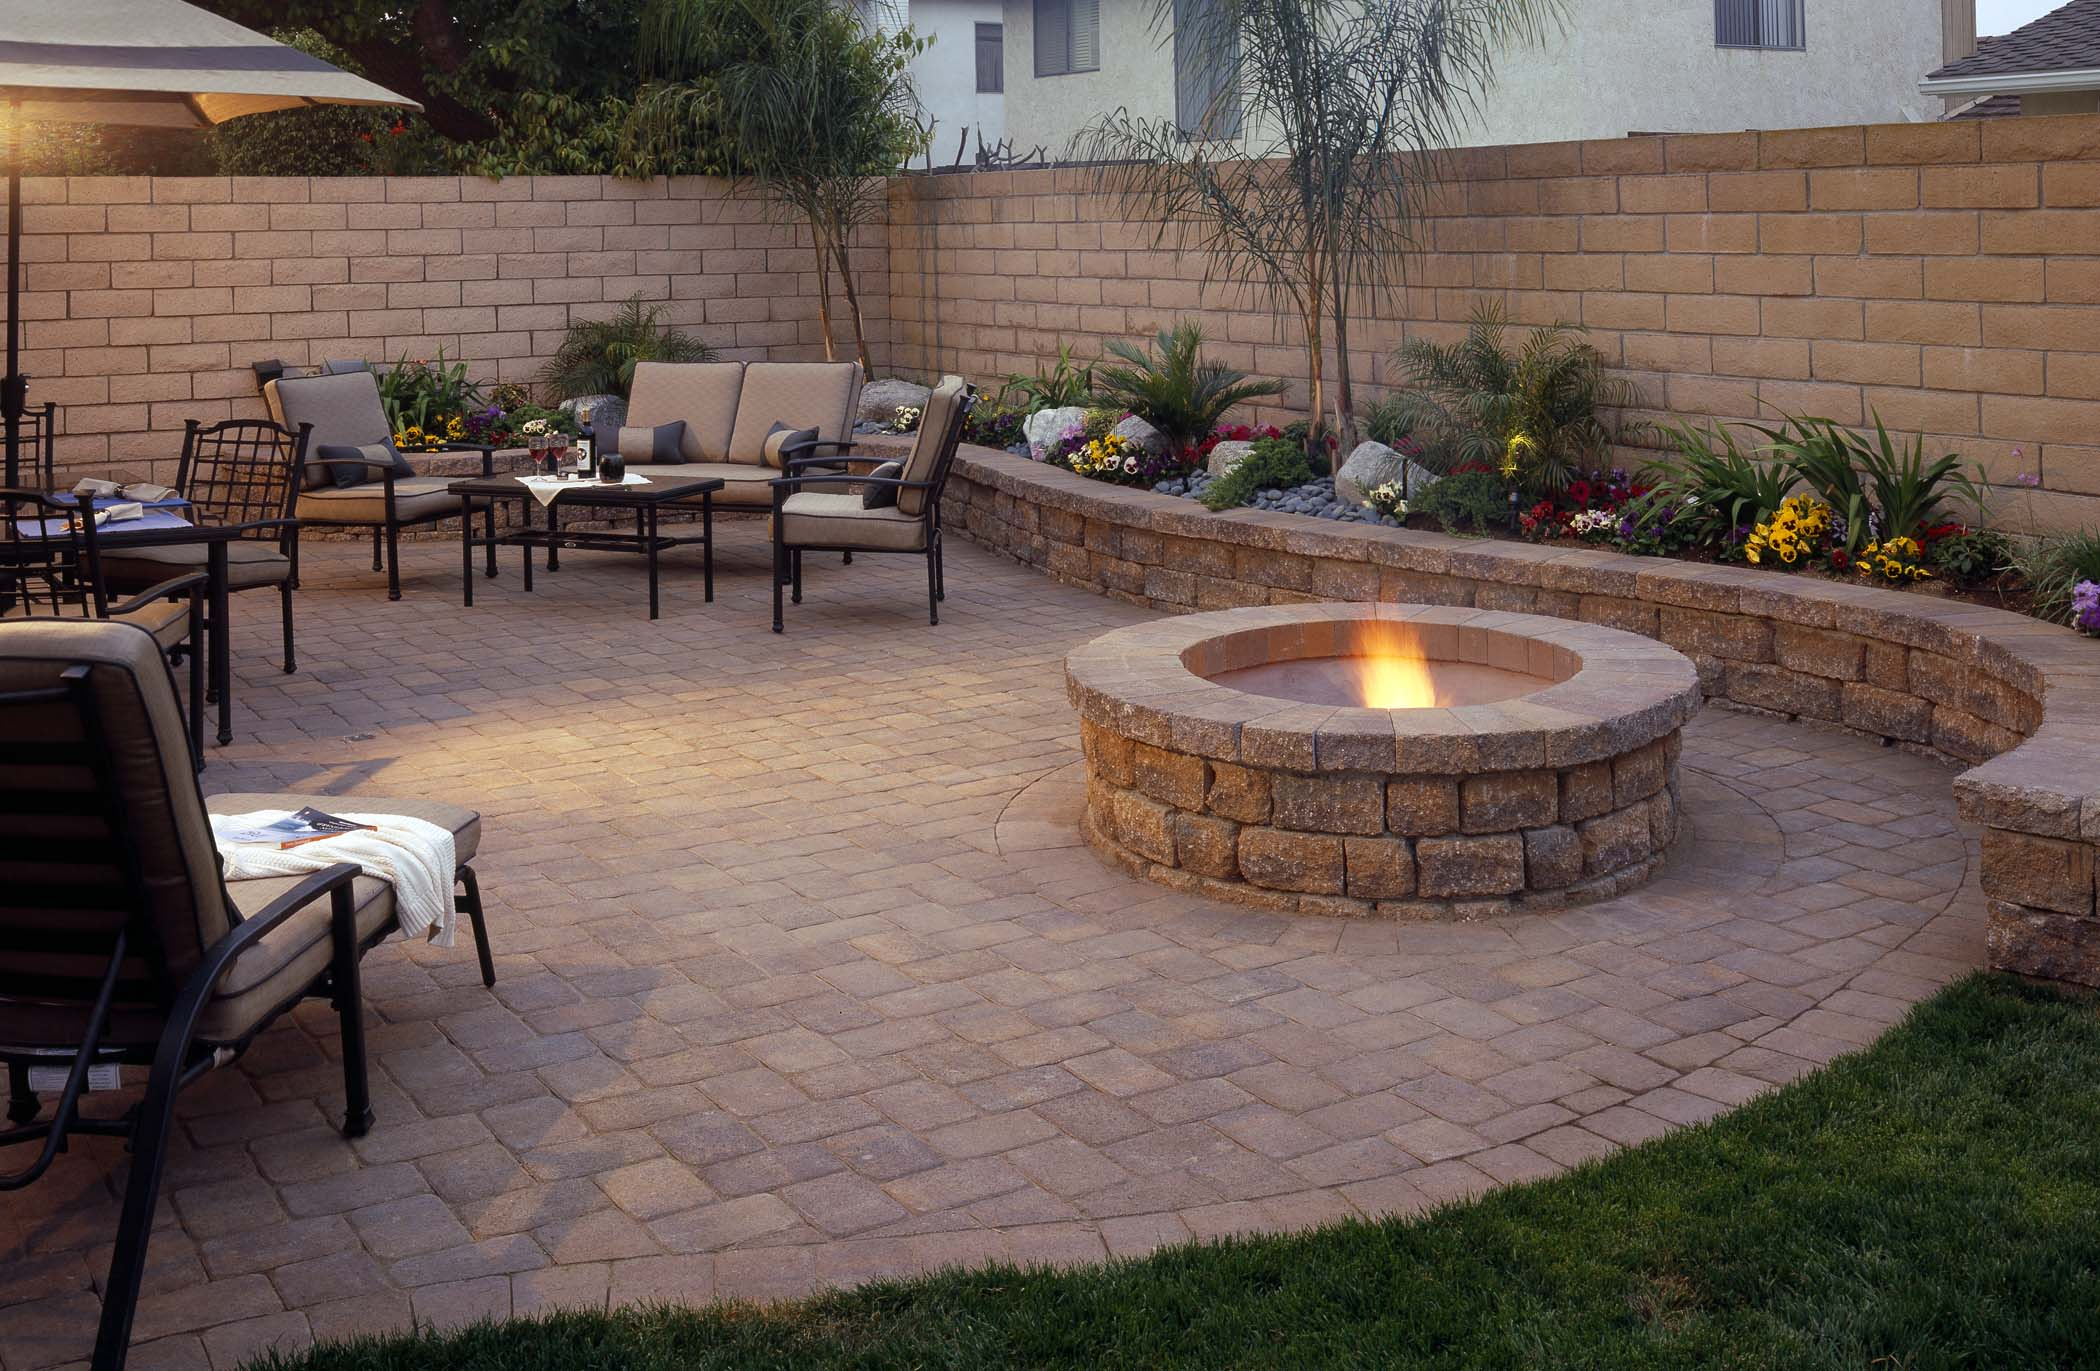 Upgrade your backyard with a beautiful fire pit for family outings.